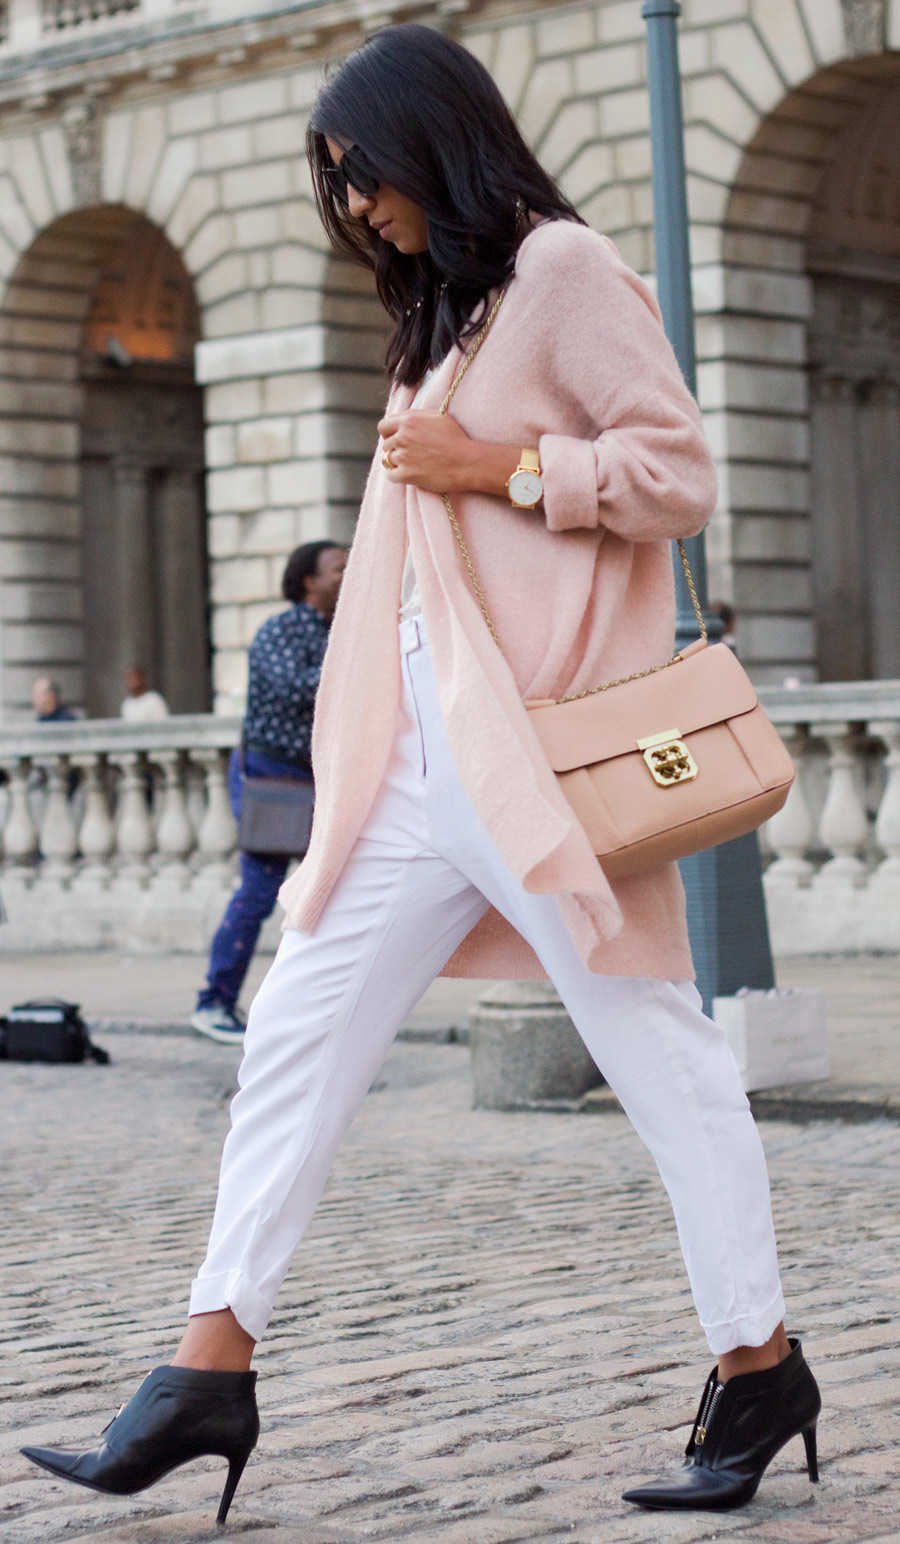 Steal her Style: Pastels for Autumn | Love Daily Dose